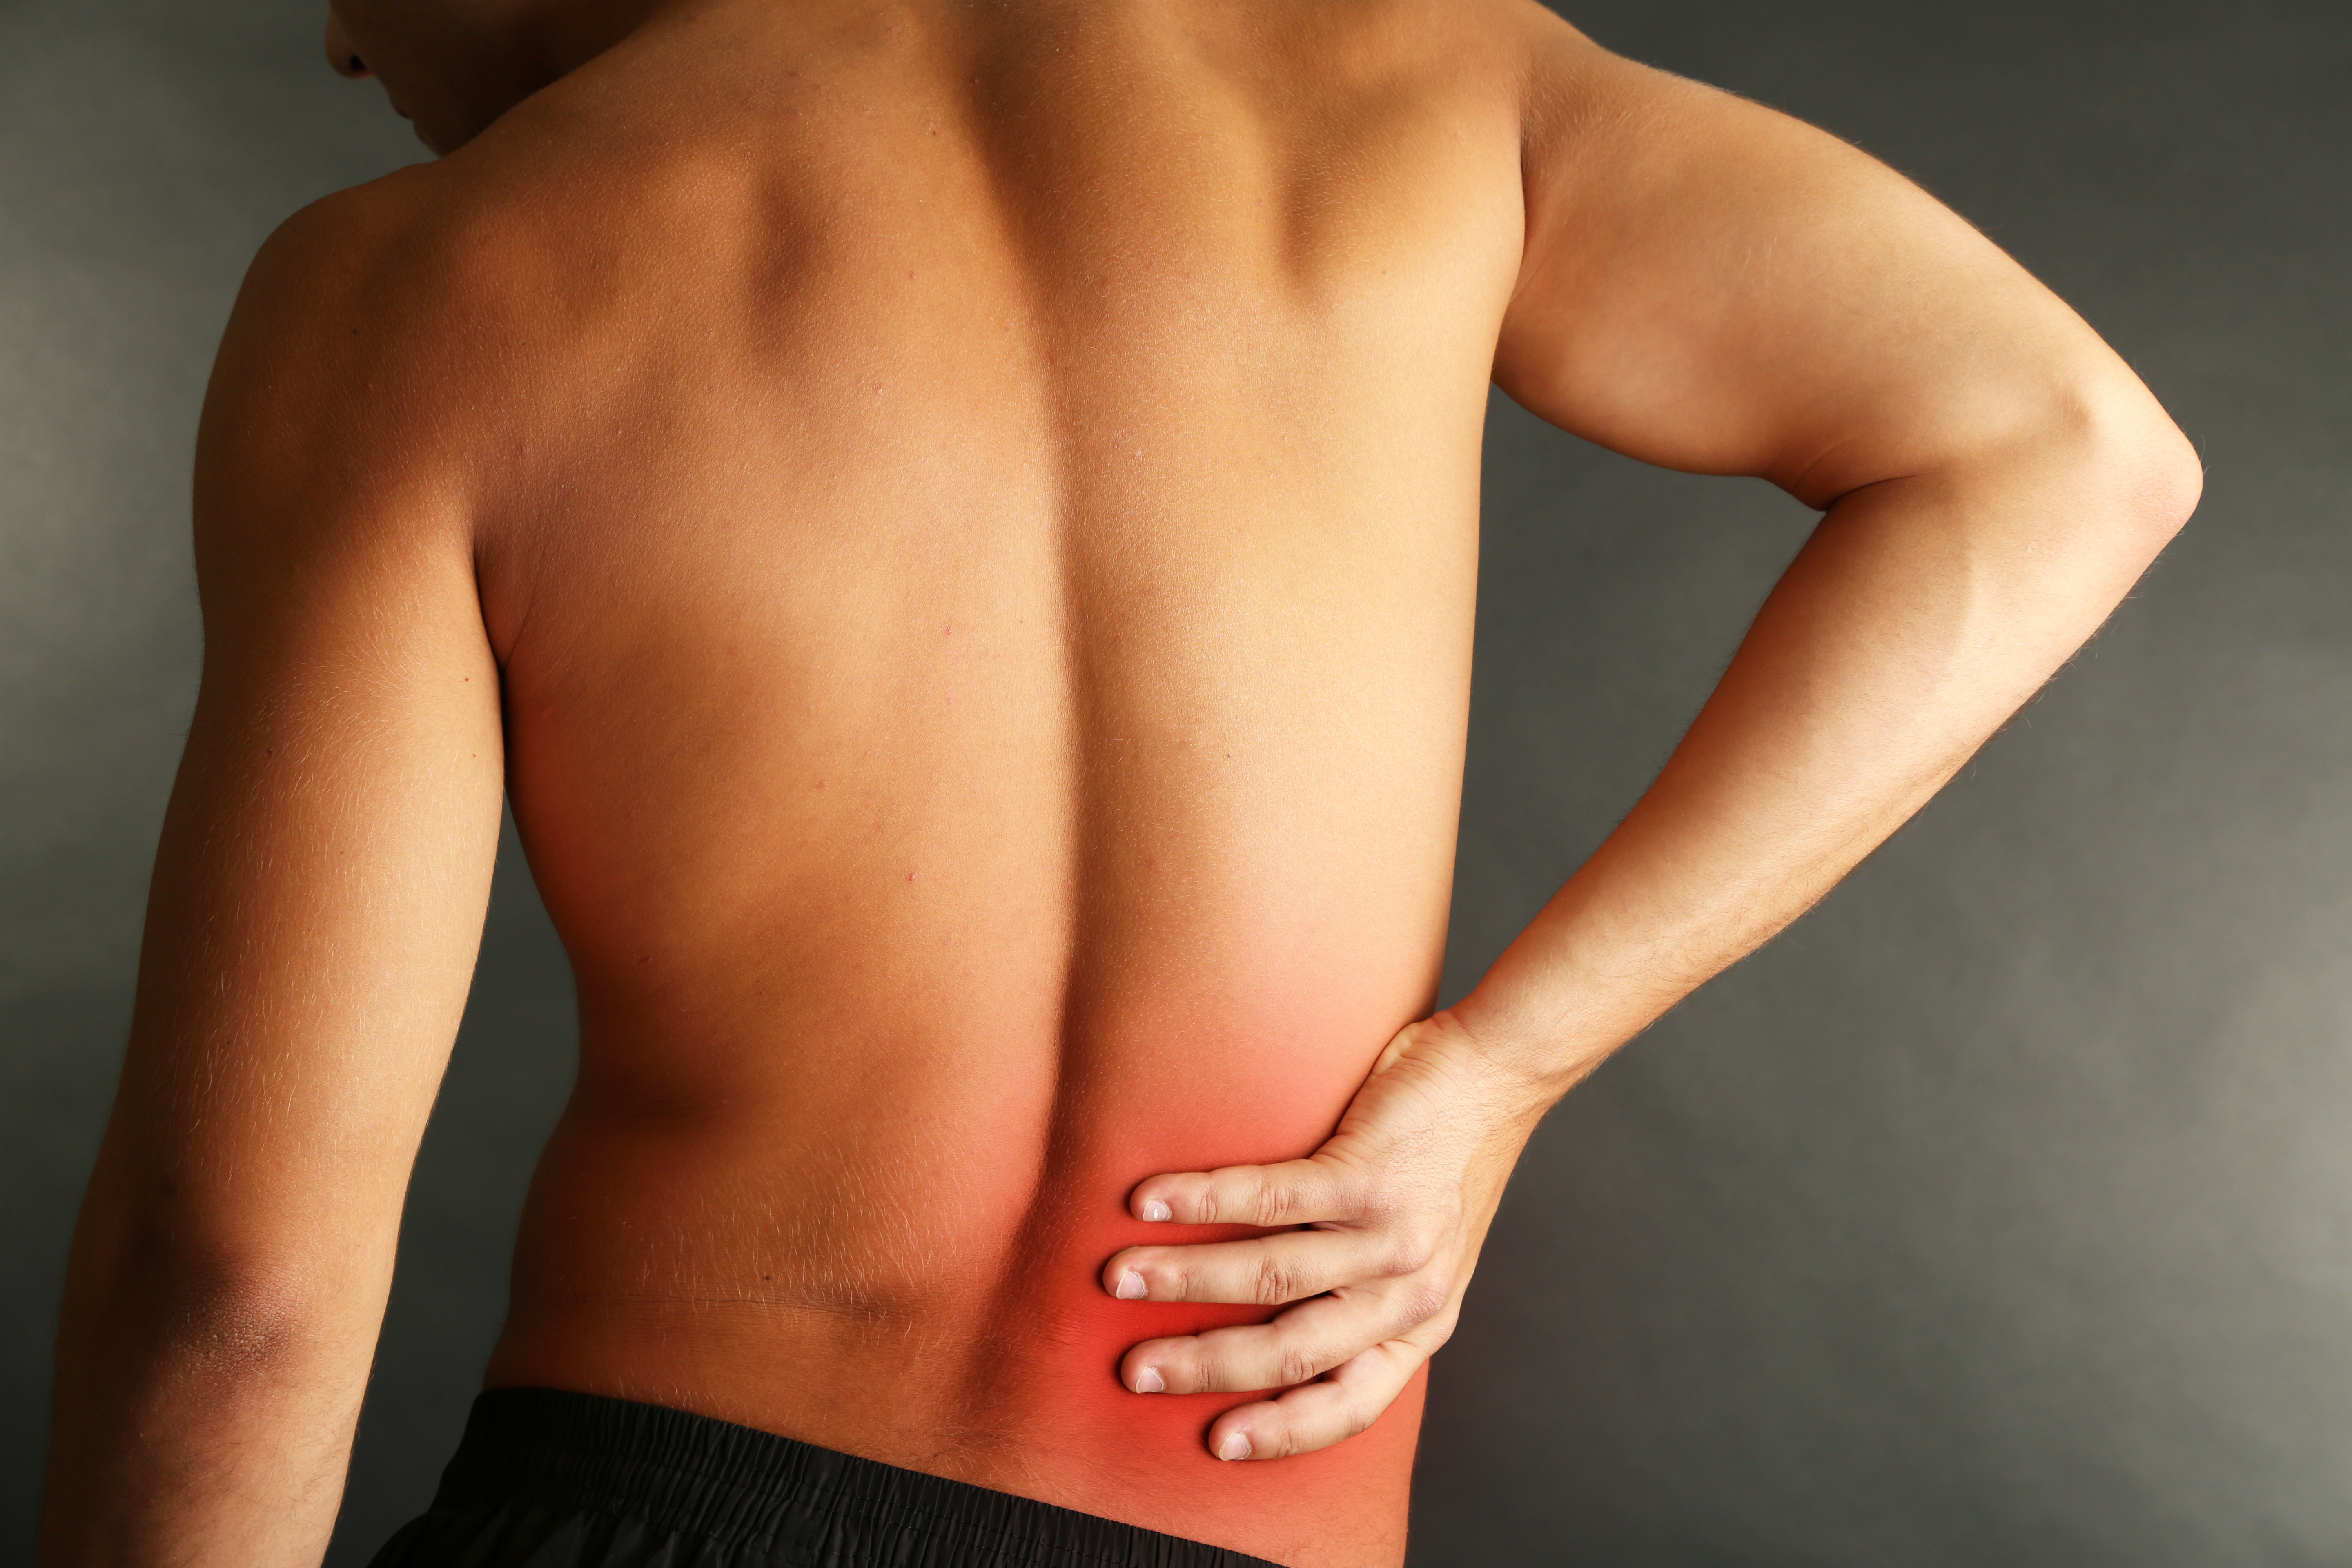 Enjoy Natural Relief With Prolotherapy For Back Pain In Orange County